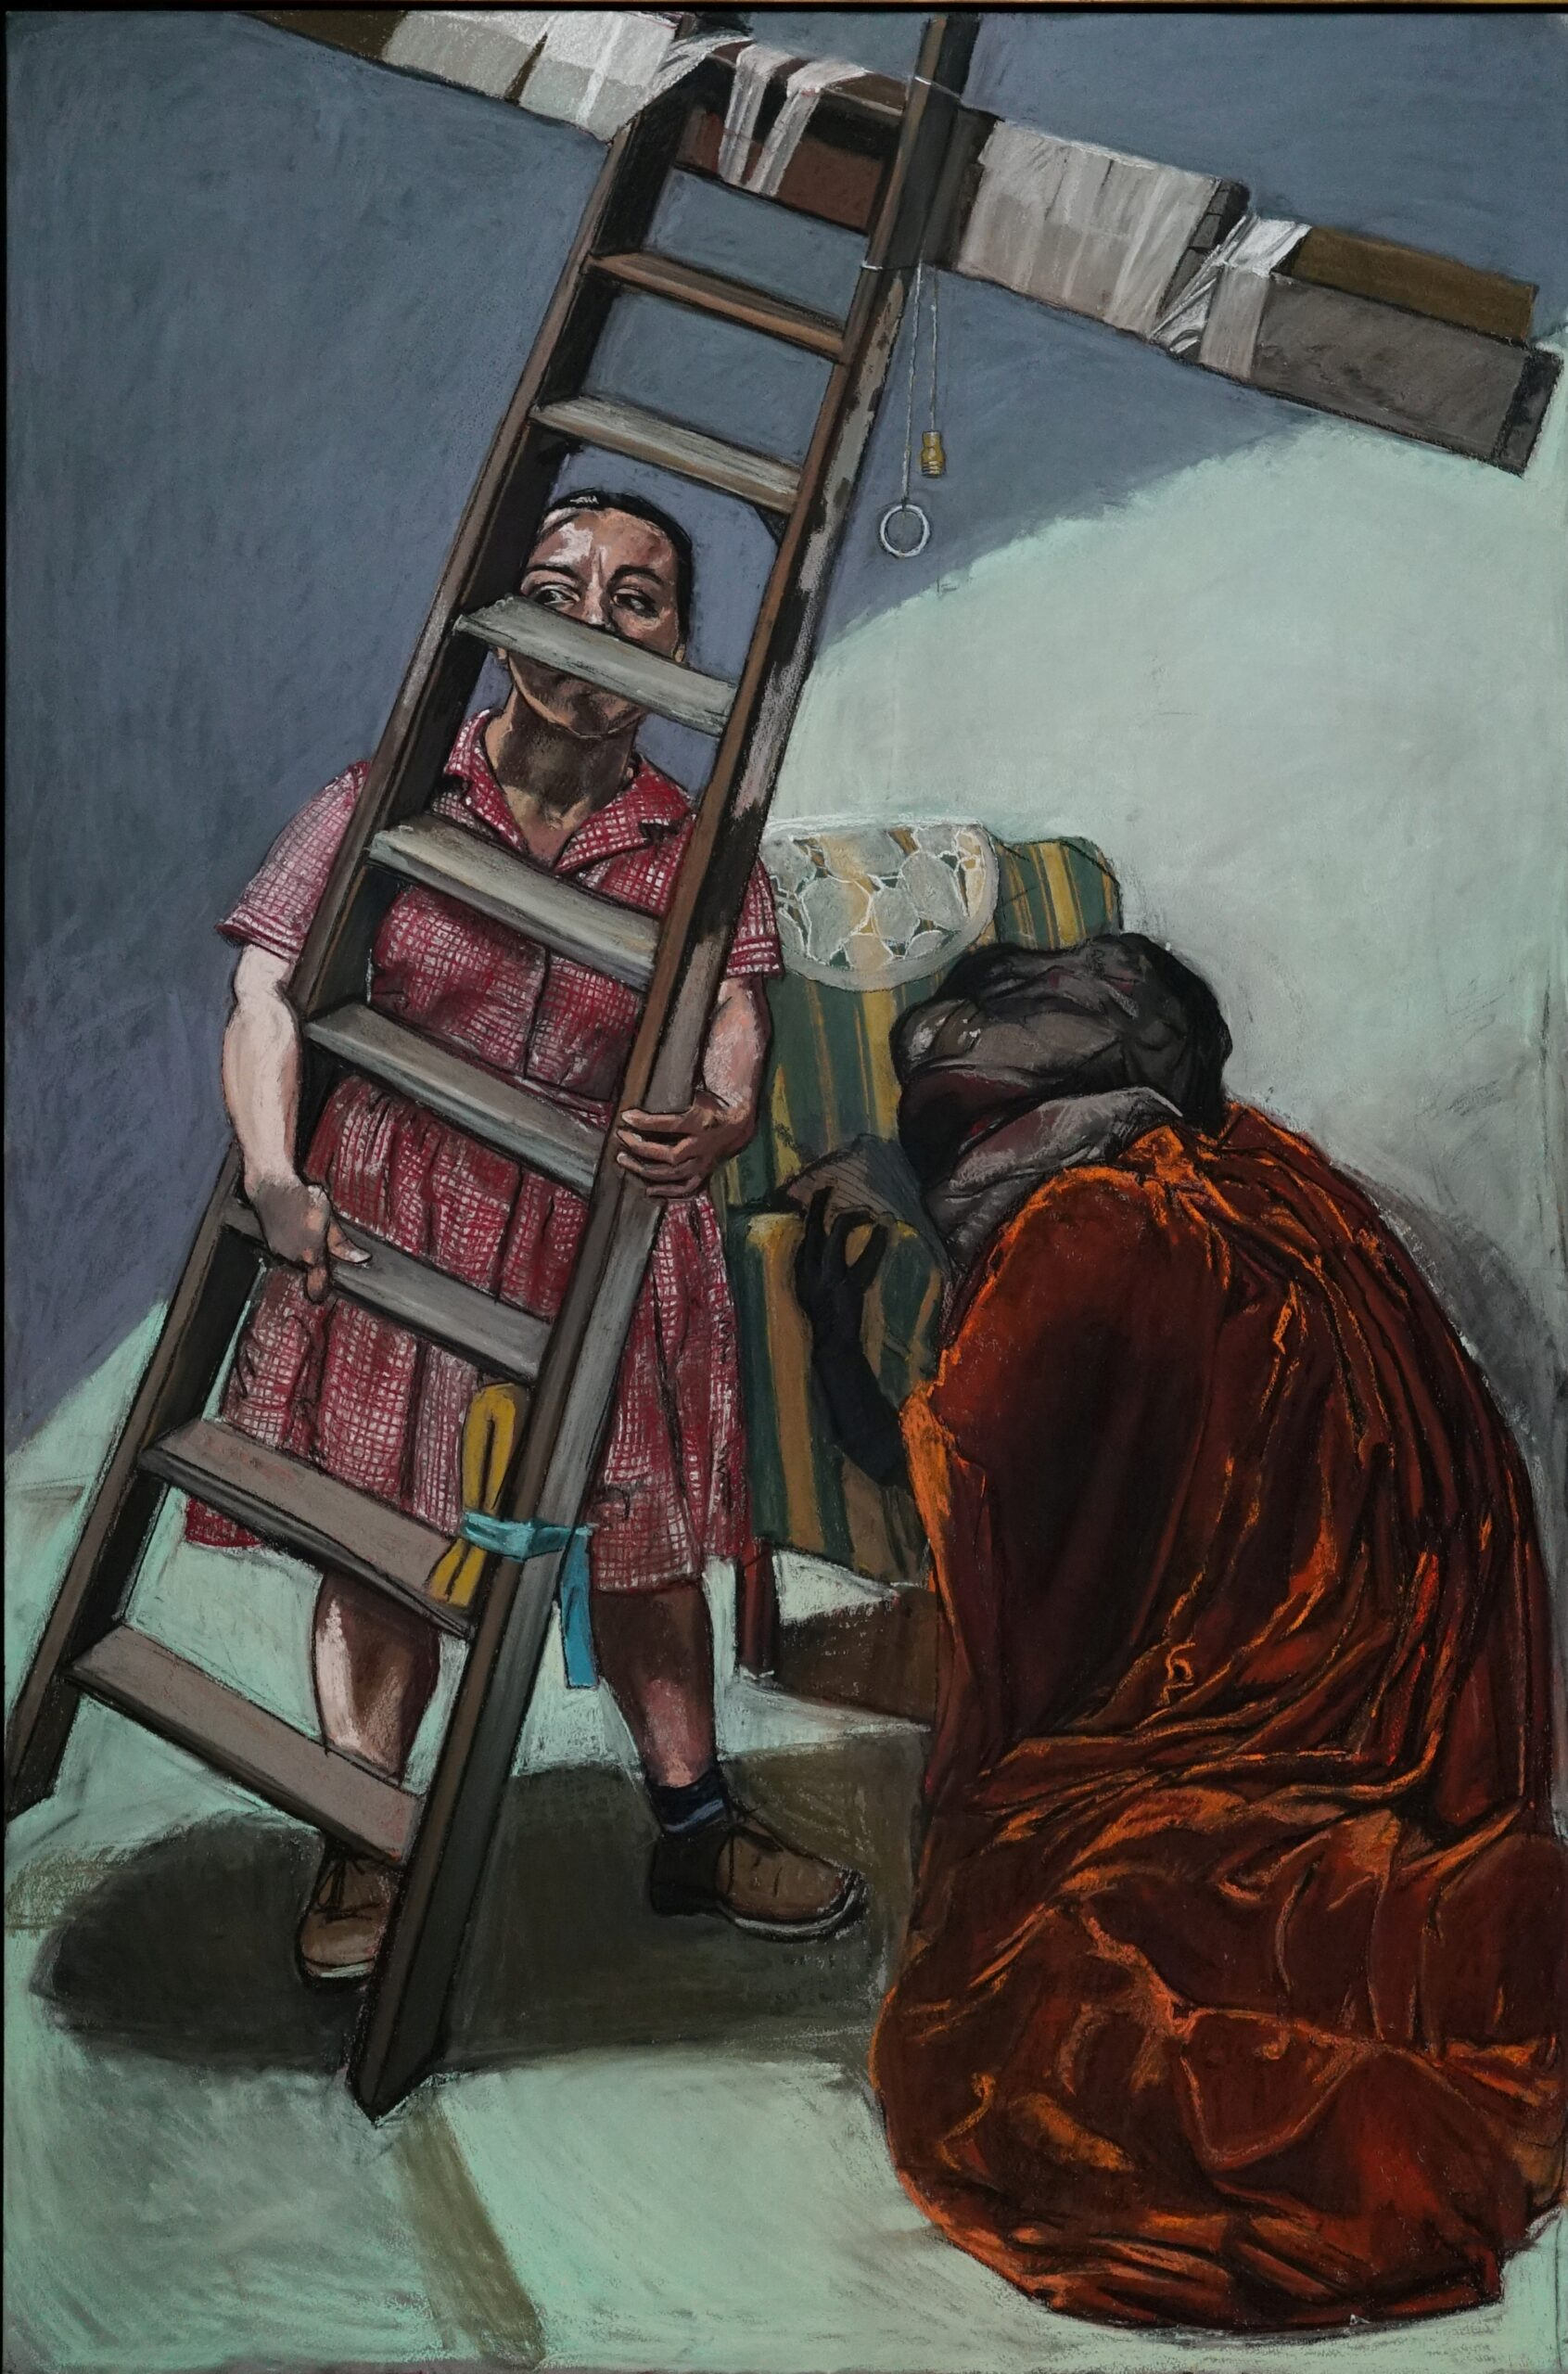 Paula Rego The Pillowman 2004. Private Collection, London © Paula Rego